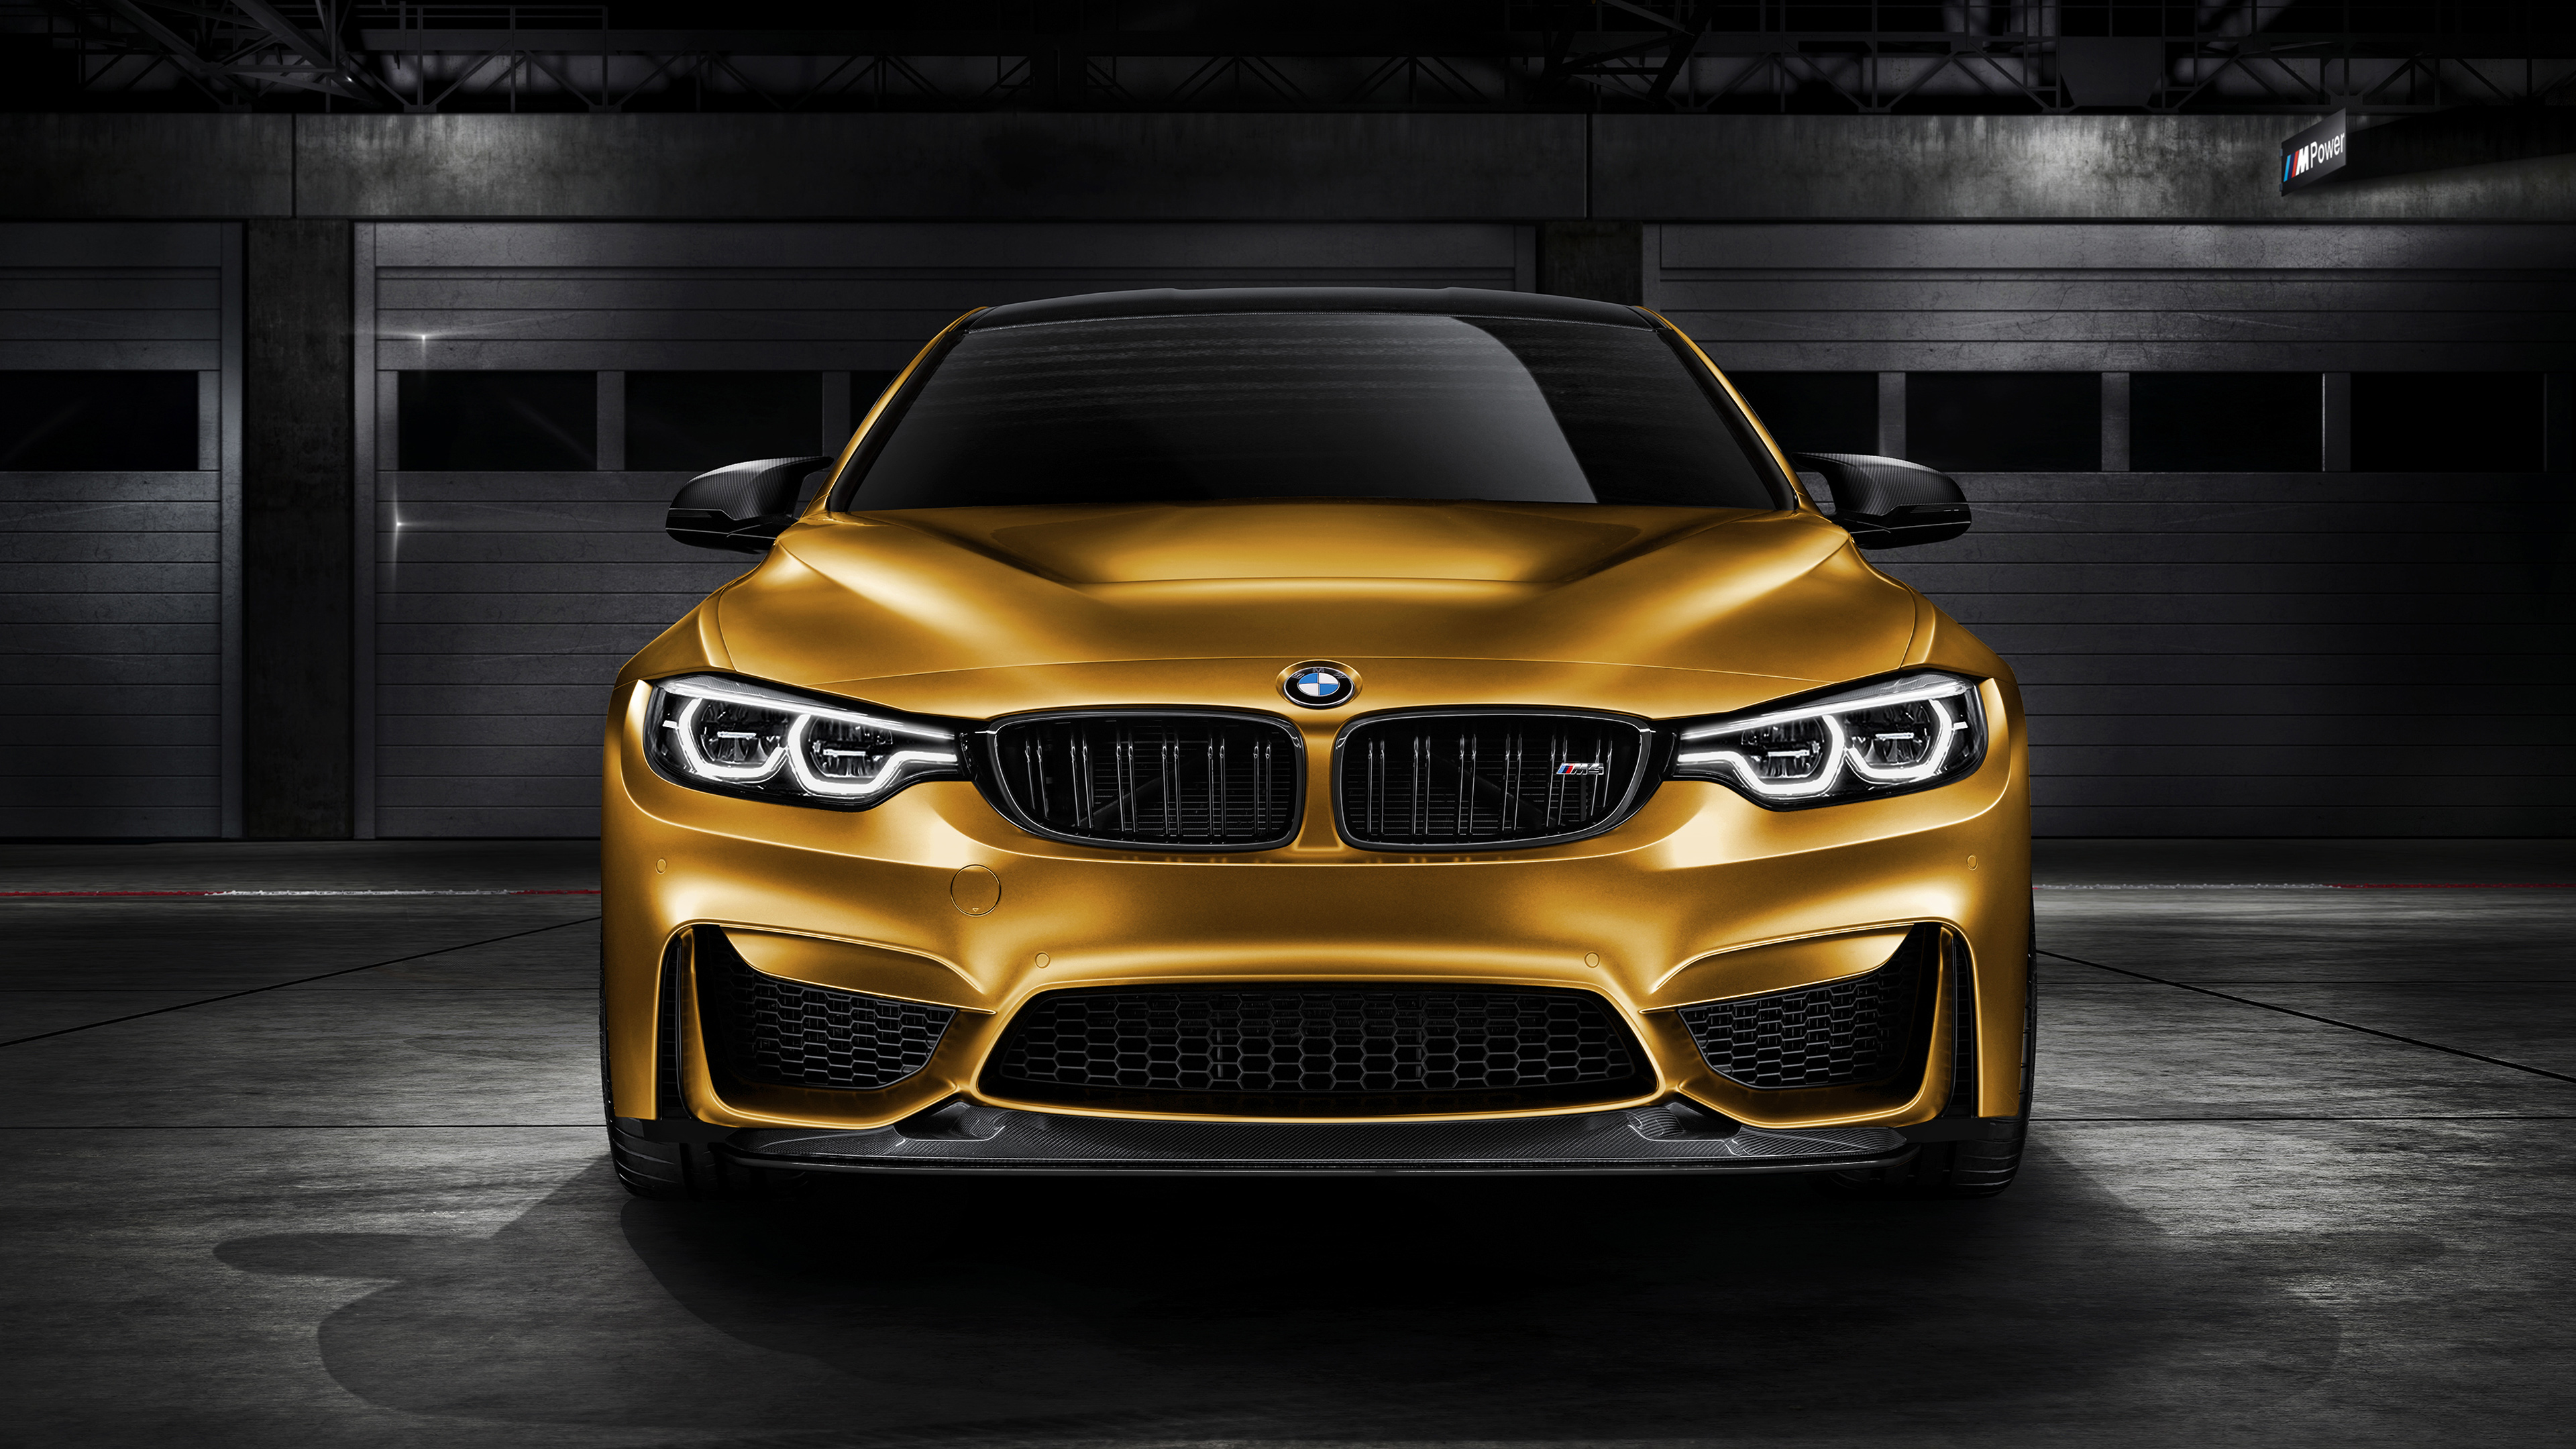 4k Wallpaper Bmw M4